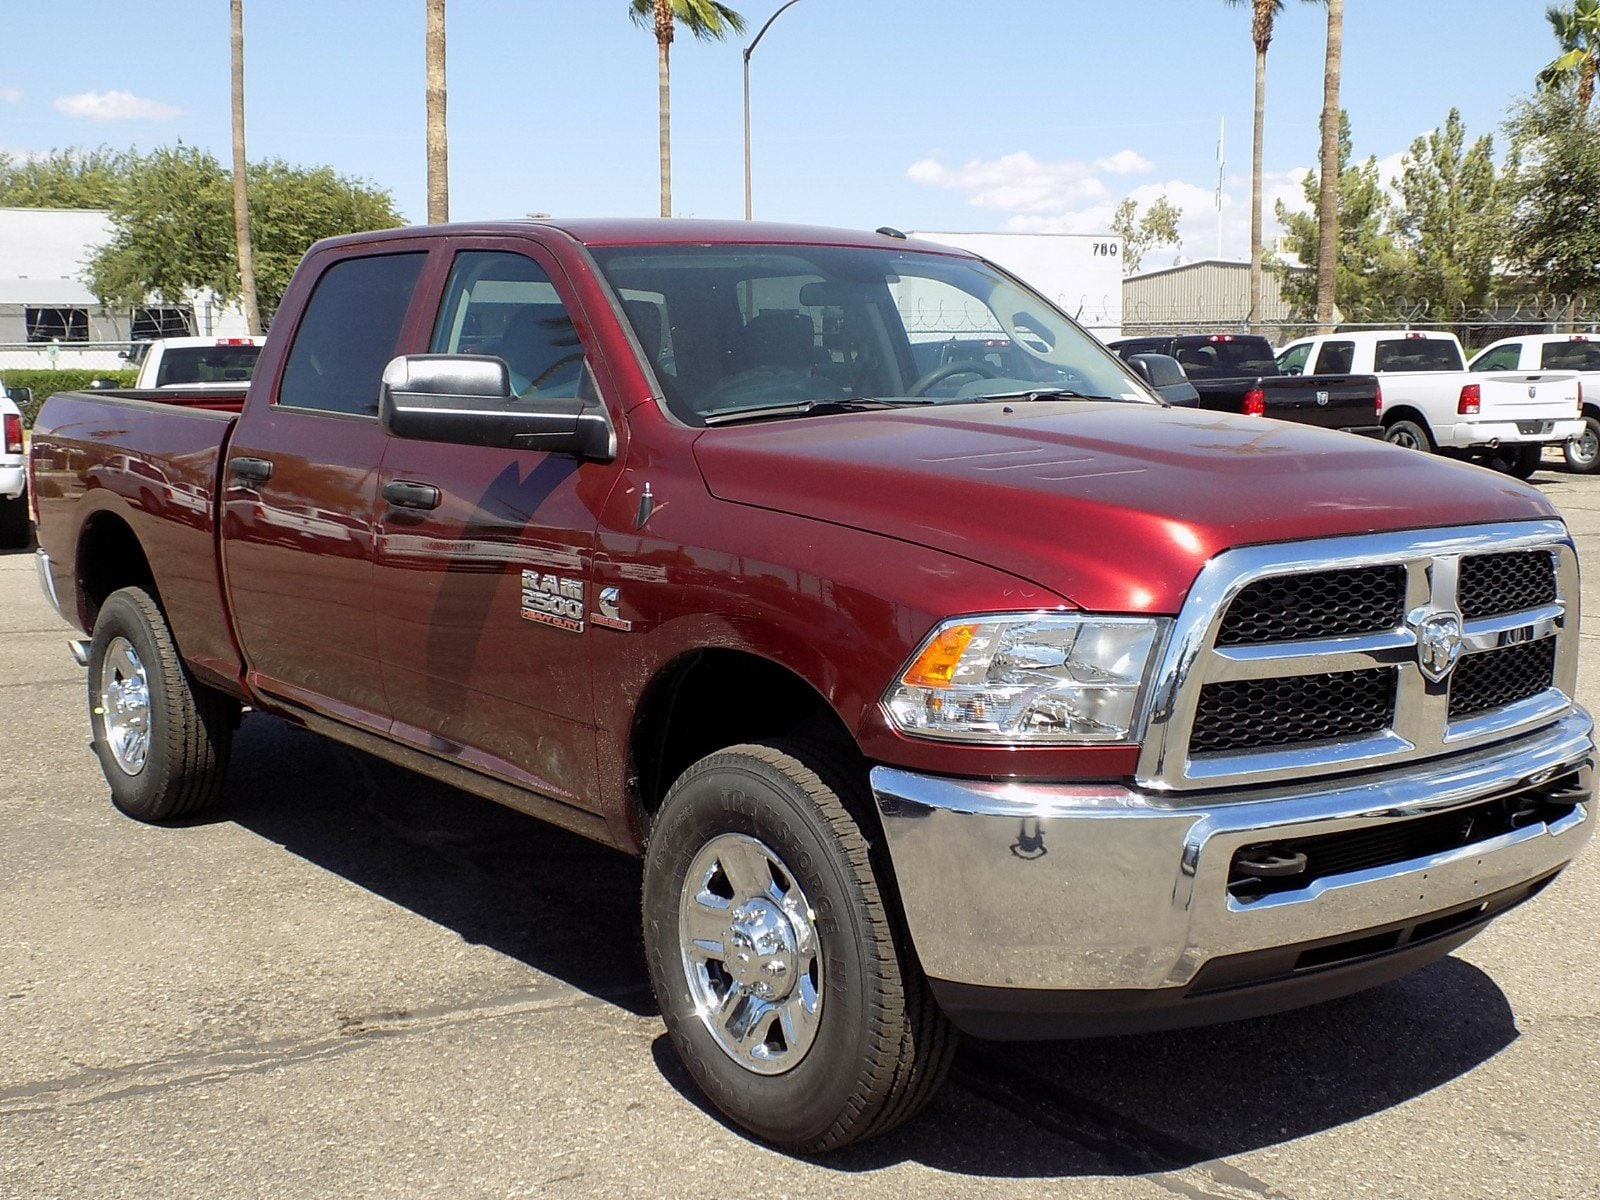 new new 2018 ram 2500 truck crew cab delmonico red pearlcoat for sale or lease in tucson utah. Black Bedroom Furniture Sets. Home Design Ideas